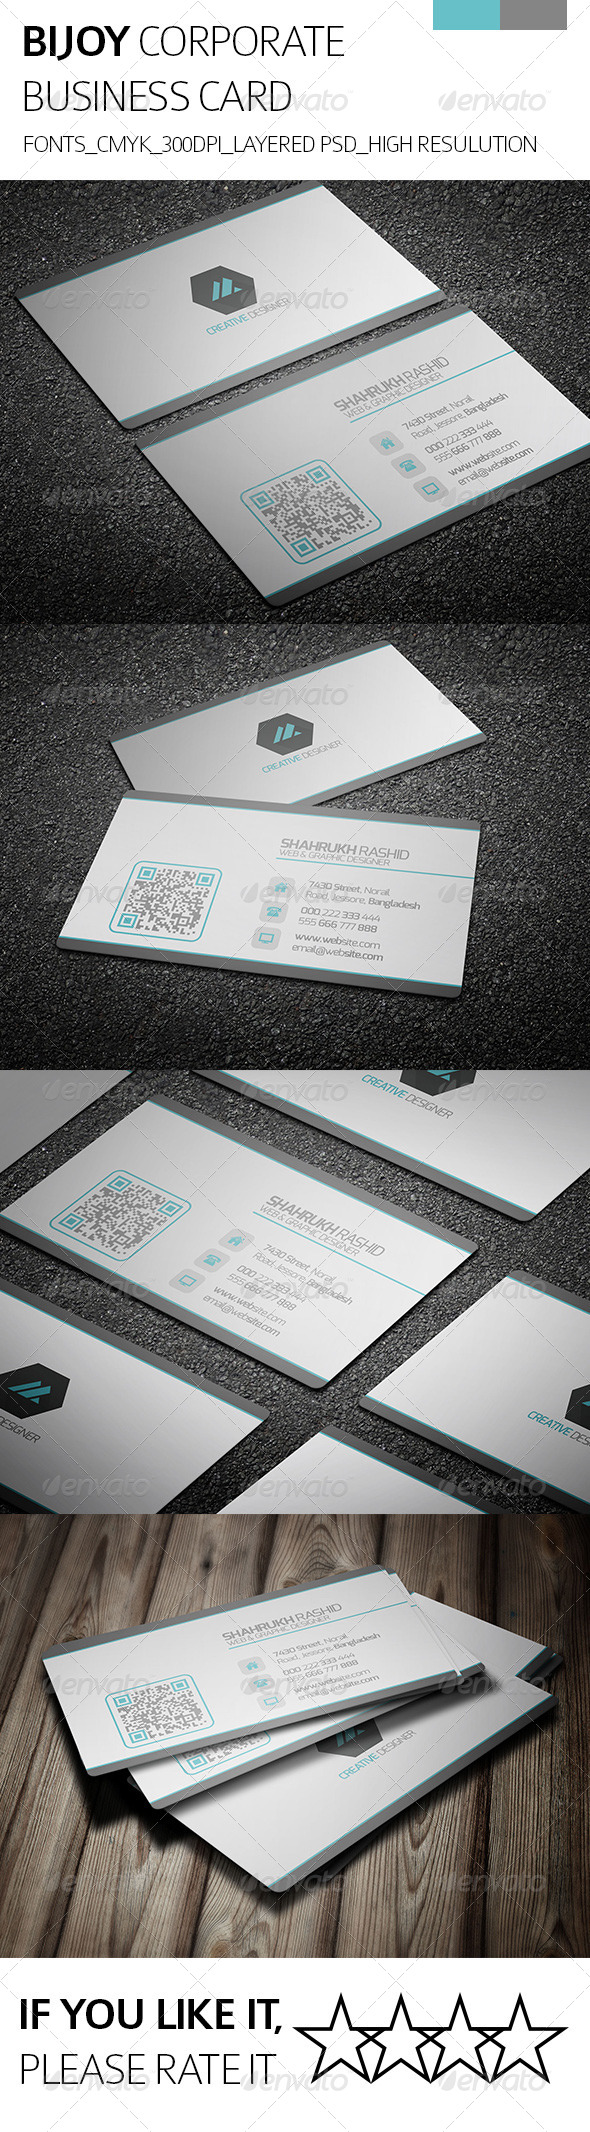 GraphicRiver Bijoy & Corporate Business Card 8230333